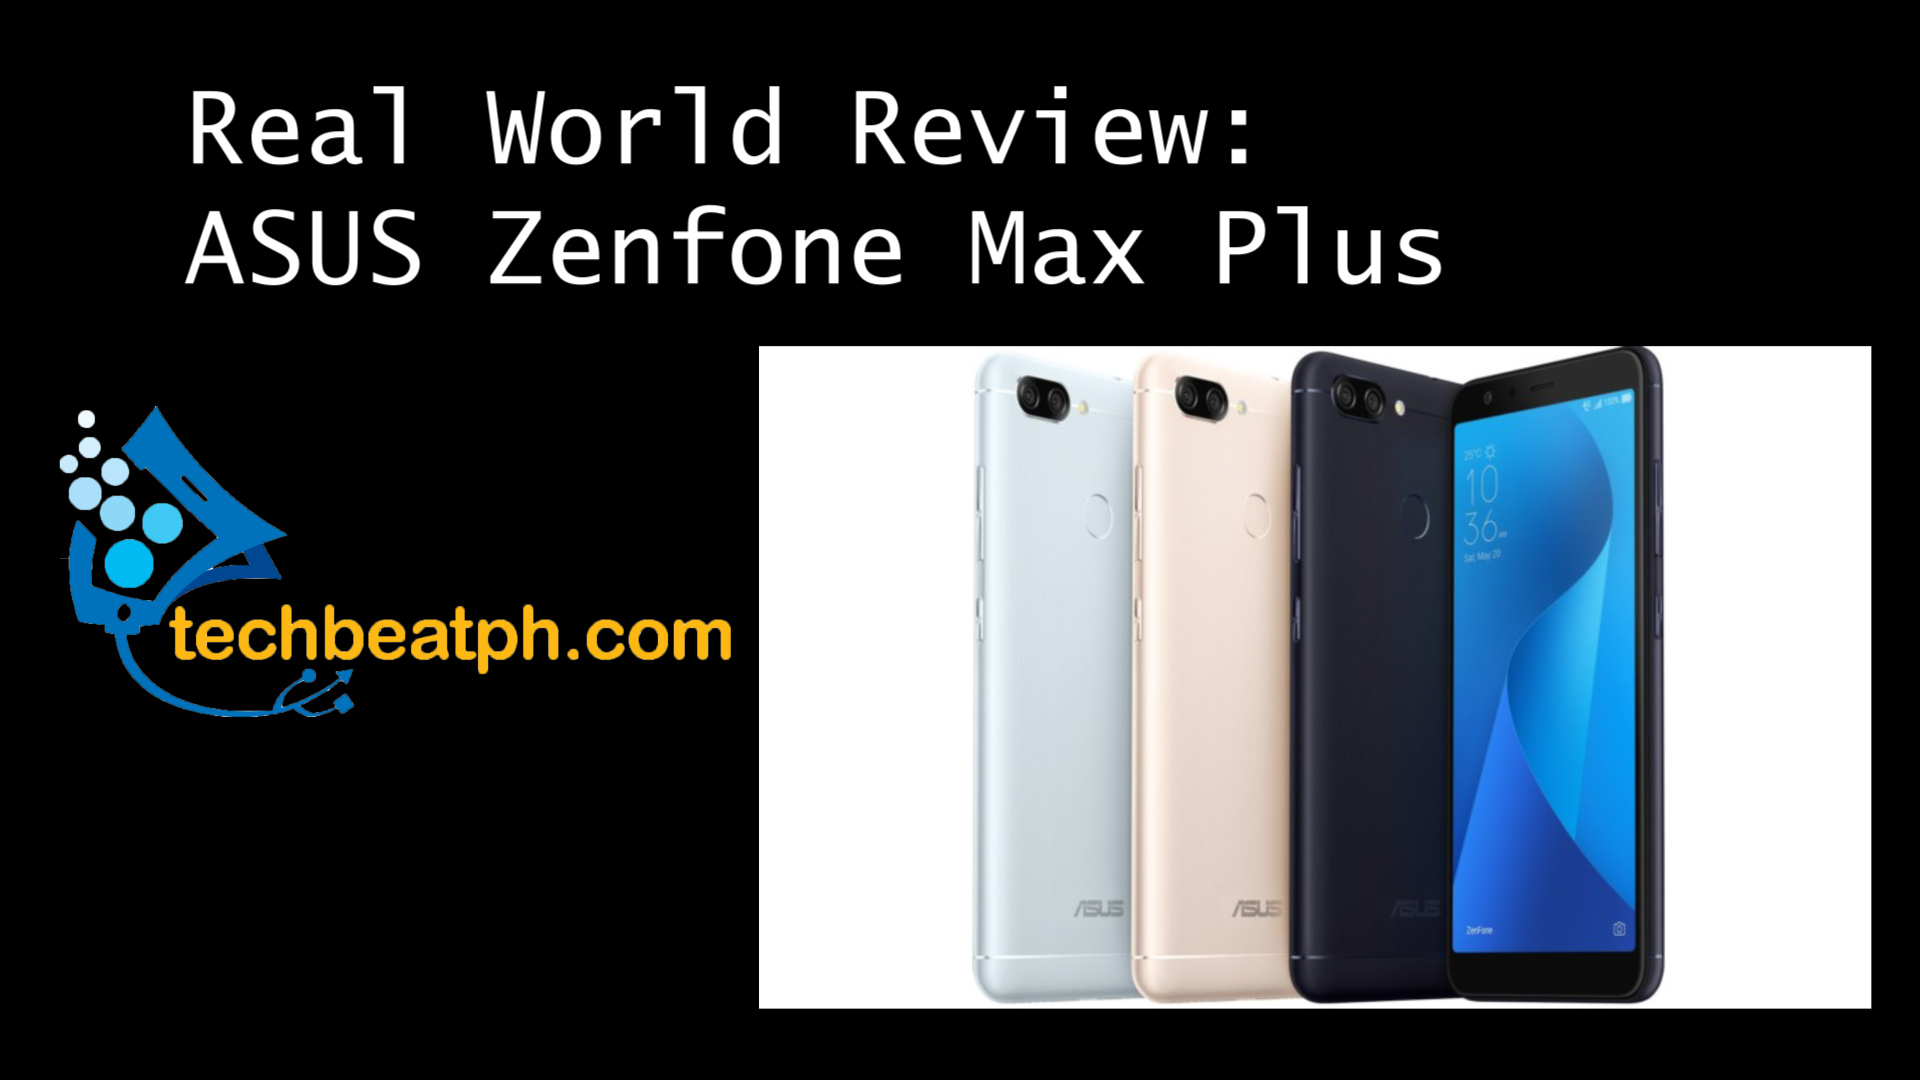 Real World Review: Zenfone Max Plus